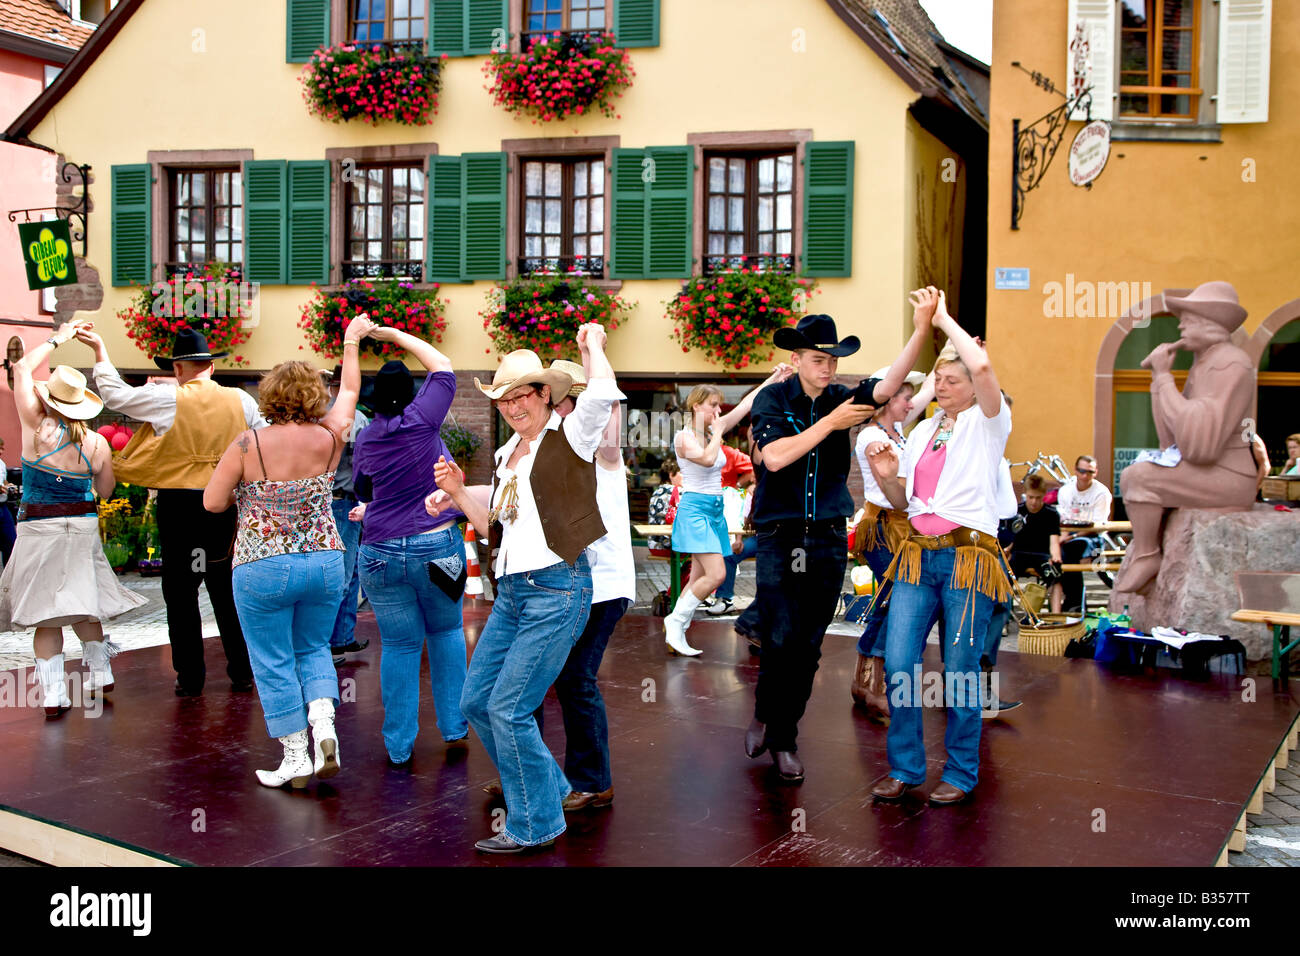 Folk dance in the street of Ribeauville Alsace France - Stock Image